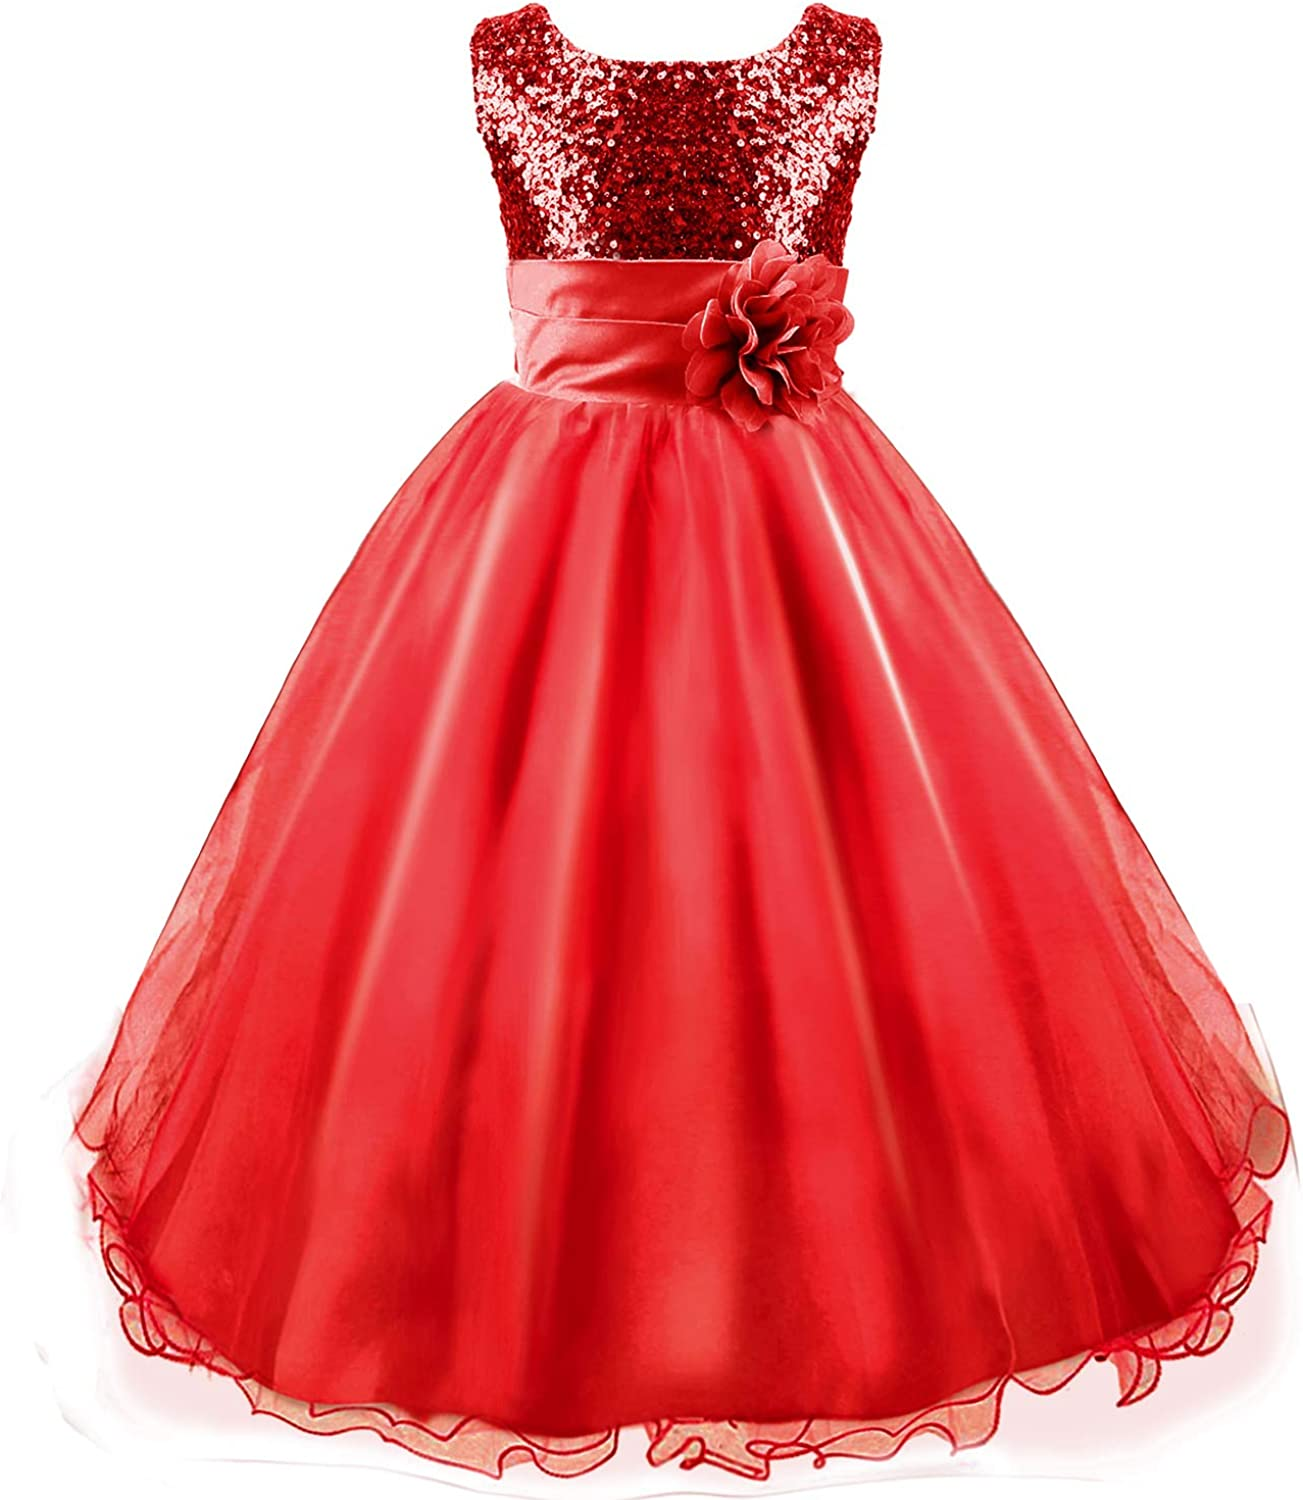 Discoball Girls Princess Dress Sequin Tulle Flower Pageant Birthday Party Wedding Bridesmaid Girl Dresses for 3-12 Years